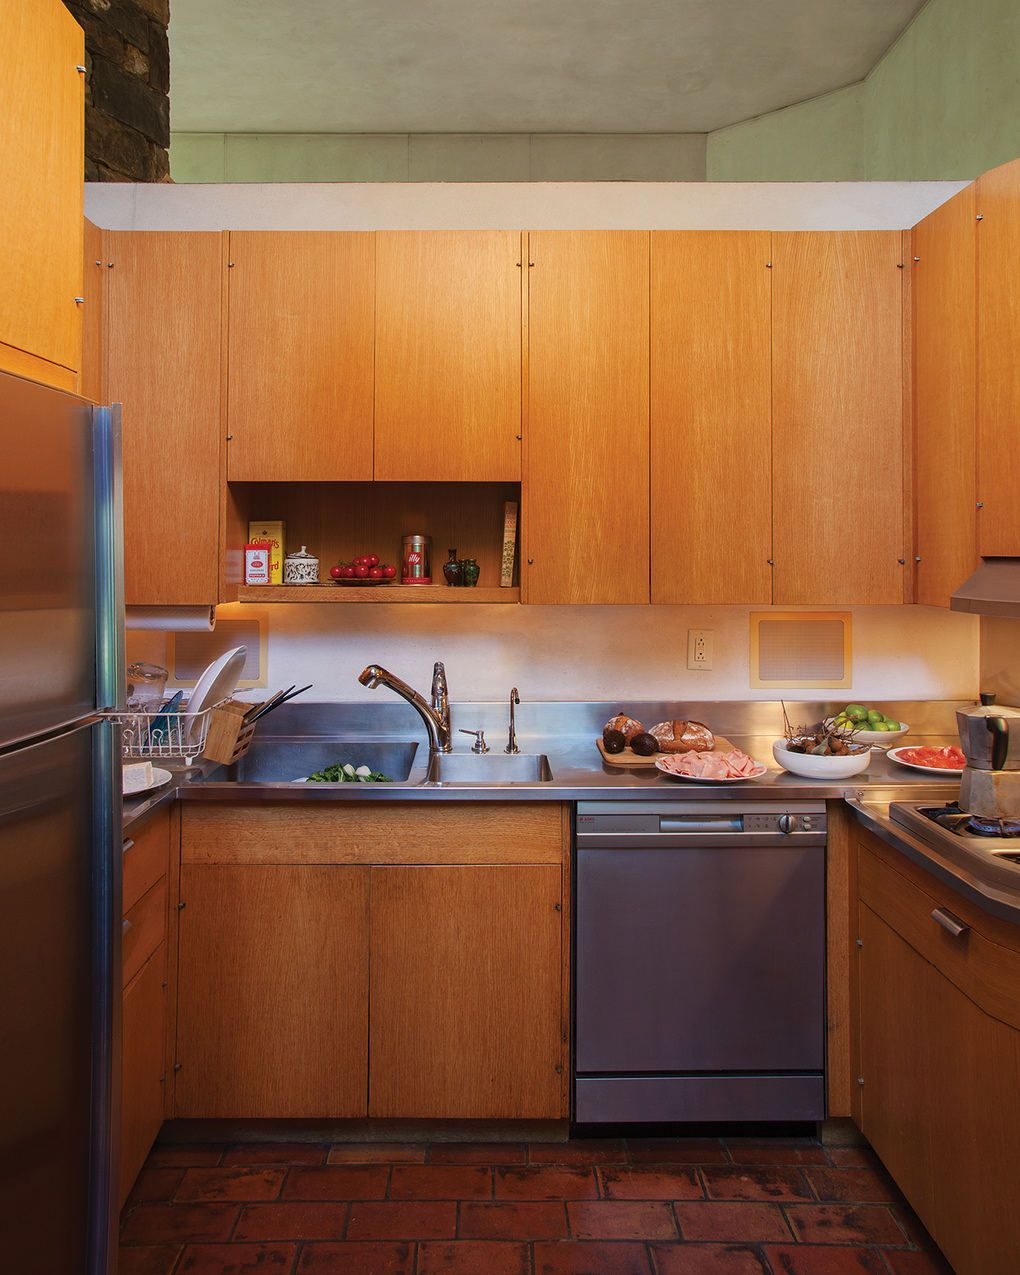 Society Hill Kitchen Cabinets: Louis Kahn - Norman Fisher House - Google 搜尋